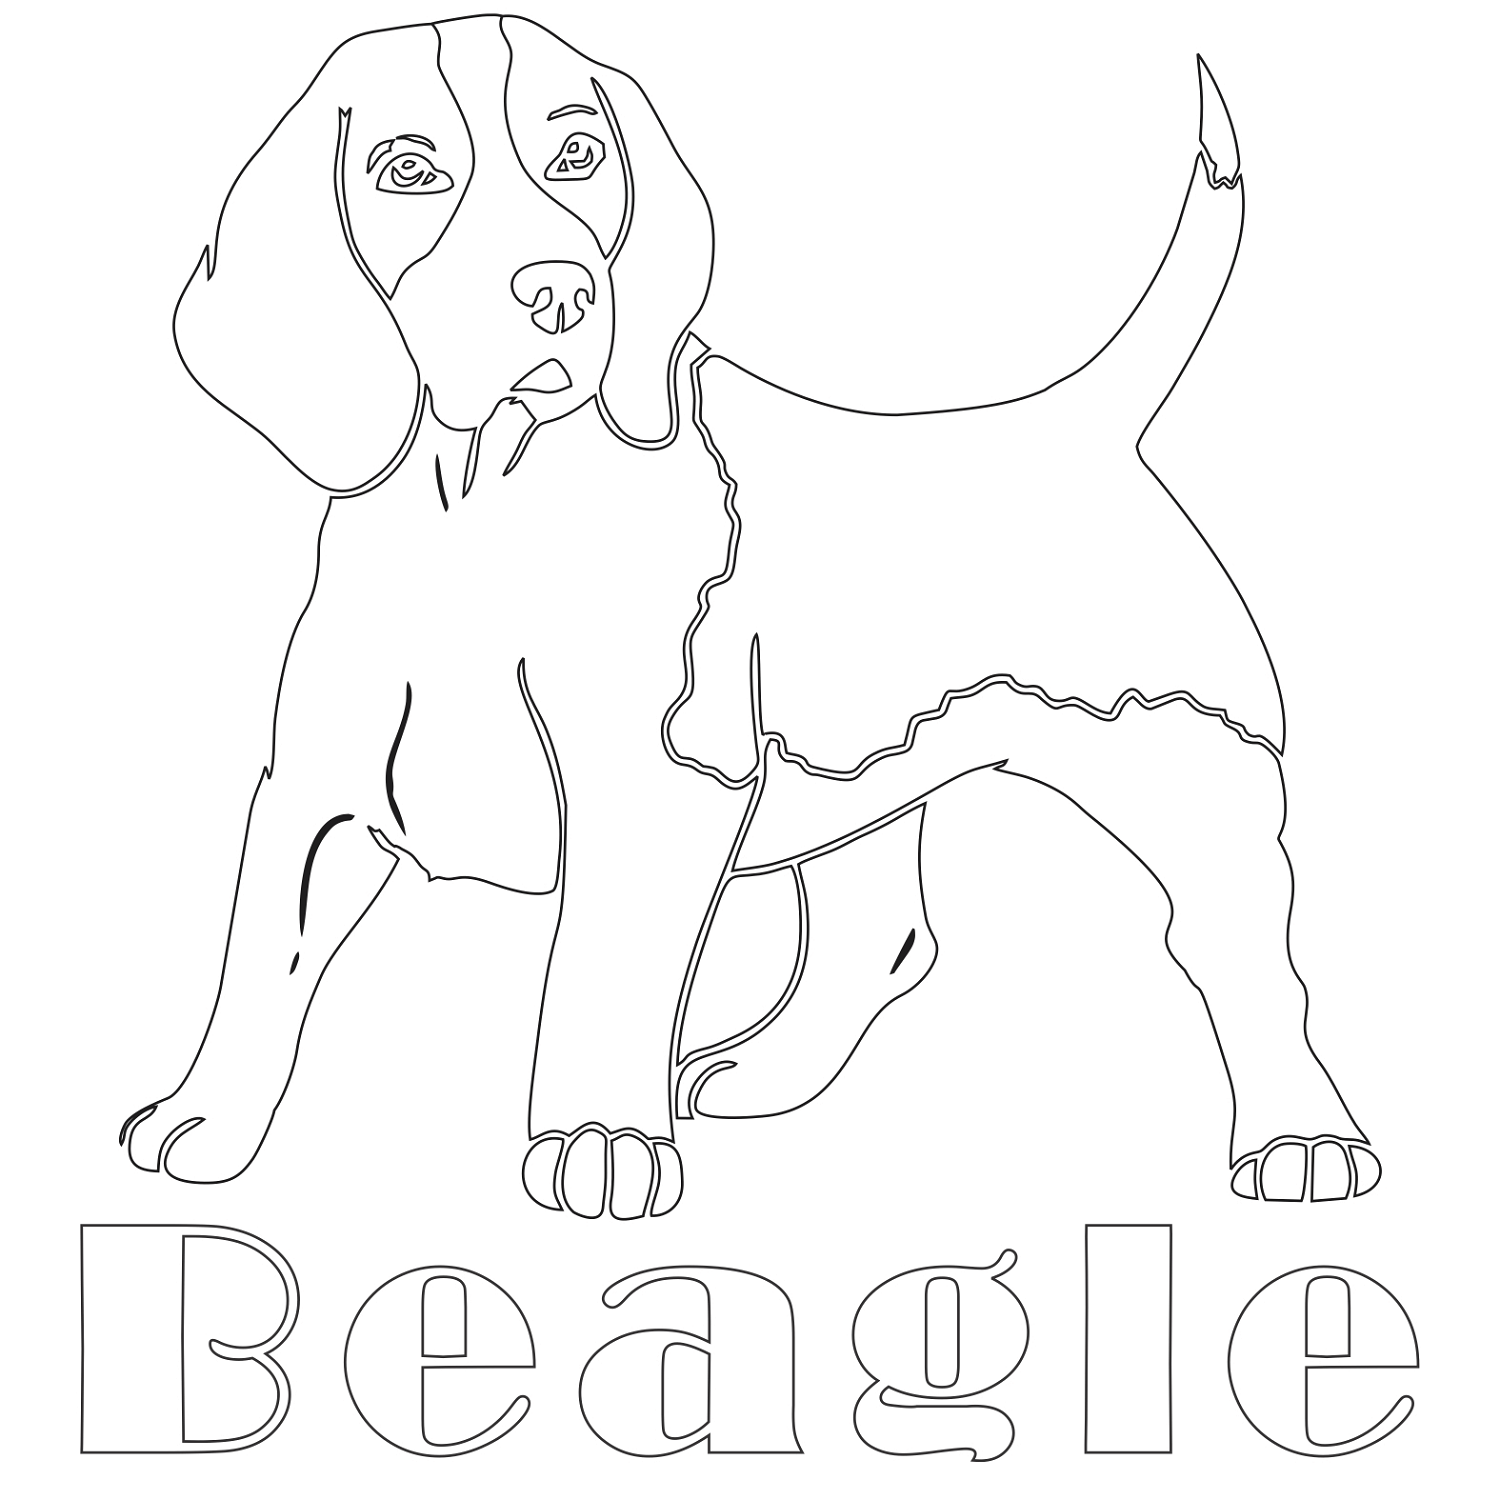 Beagle Dog Coloring Pages Pics